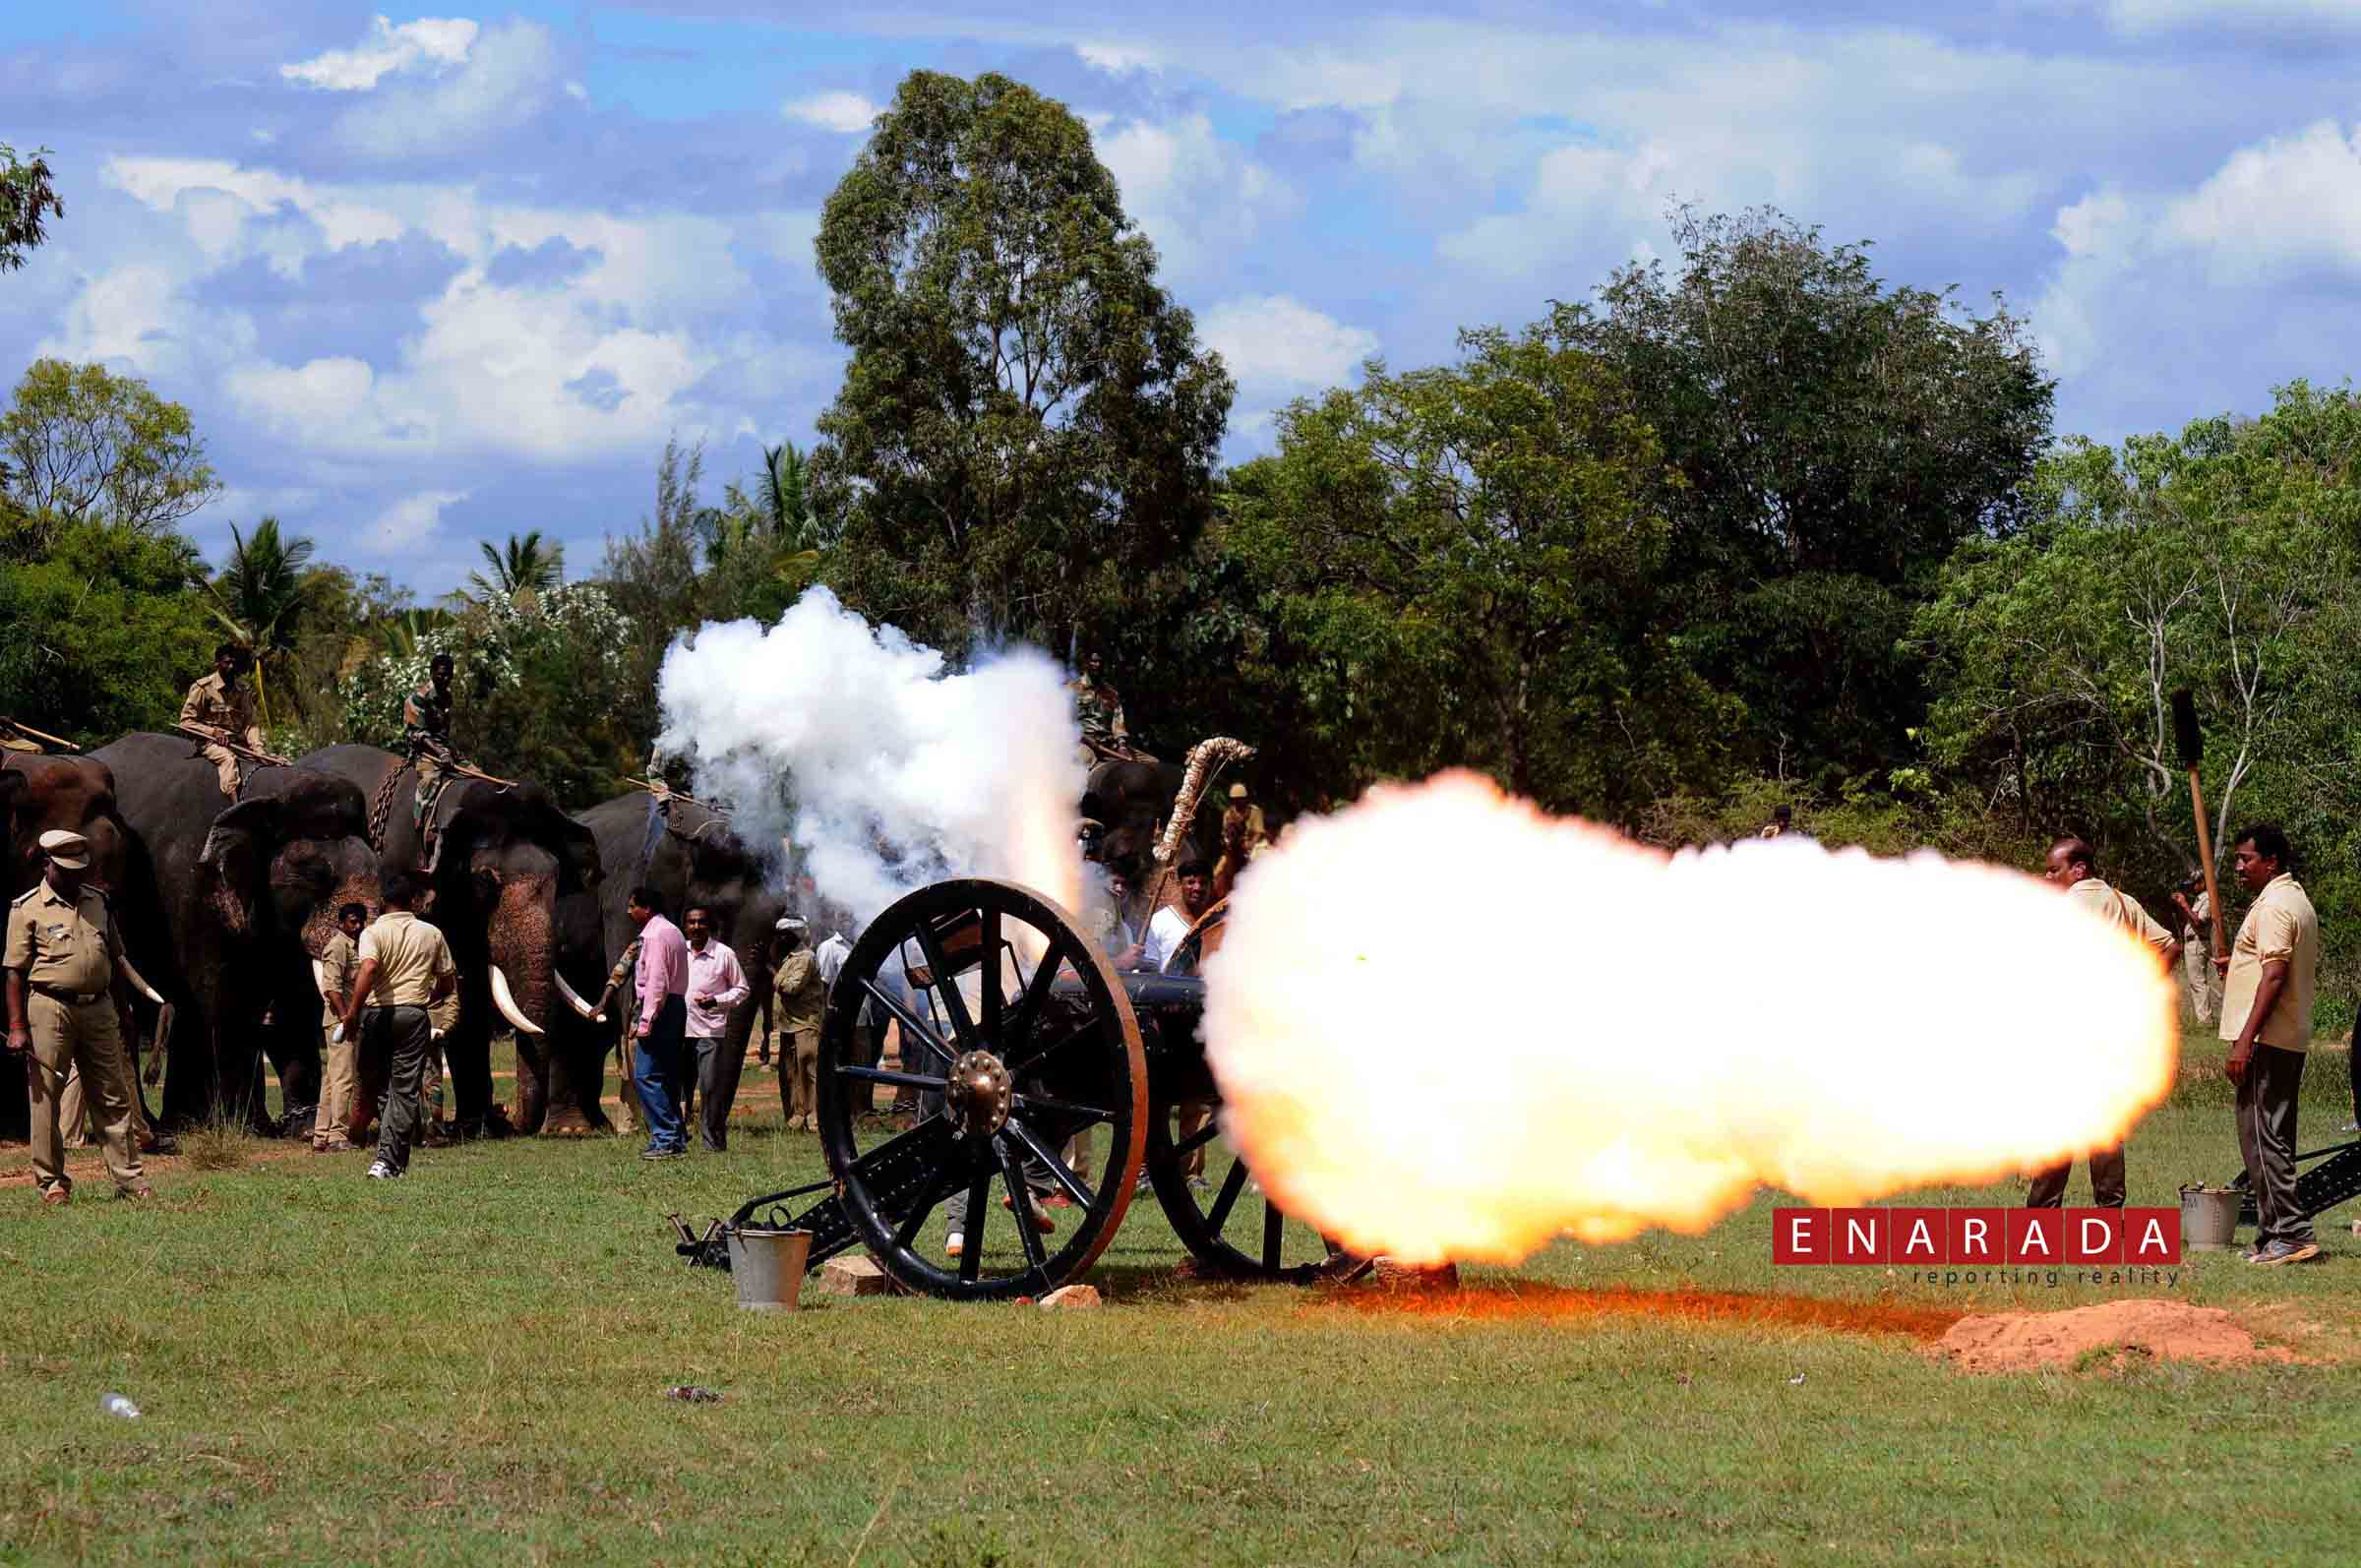 canon fire in Mysuru. Oct 7, 2015. Ph: WWW.ENARADA.COM